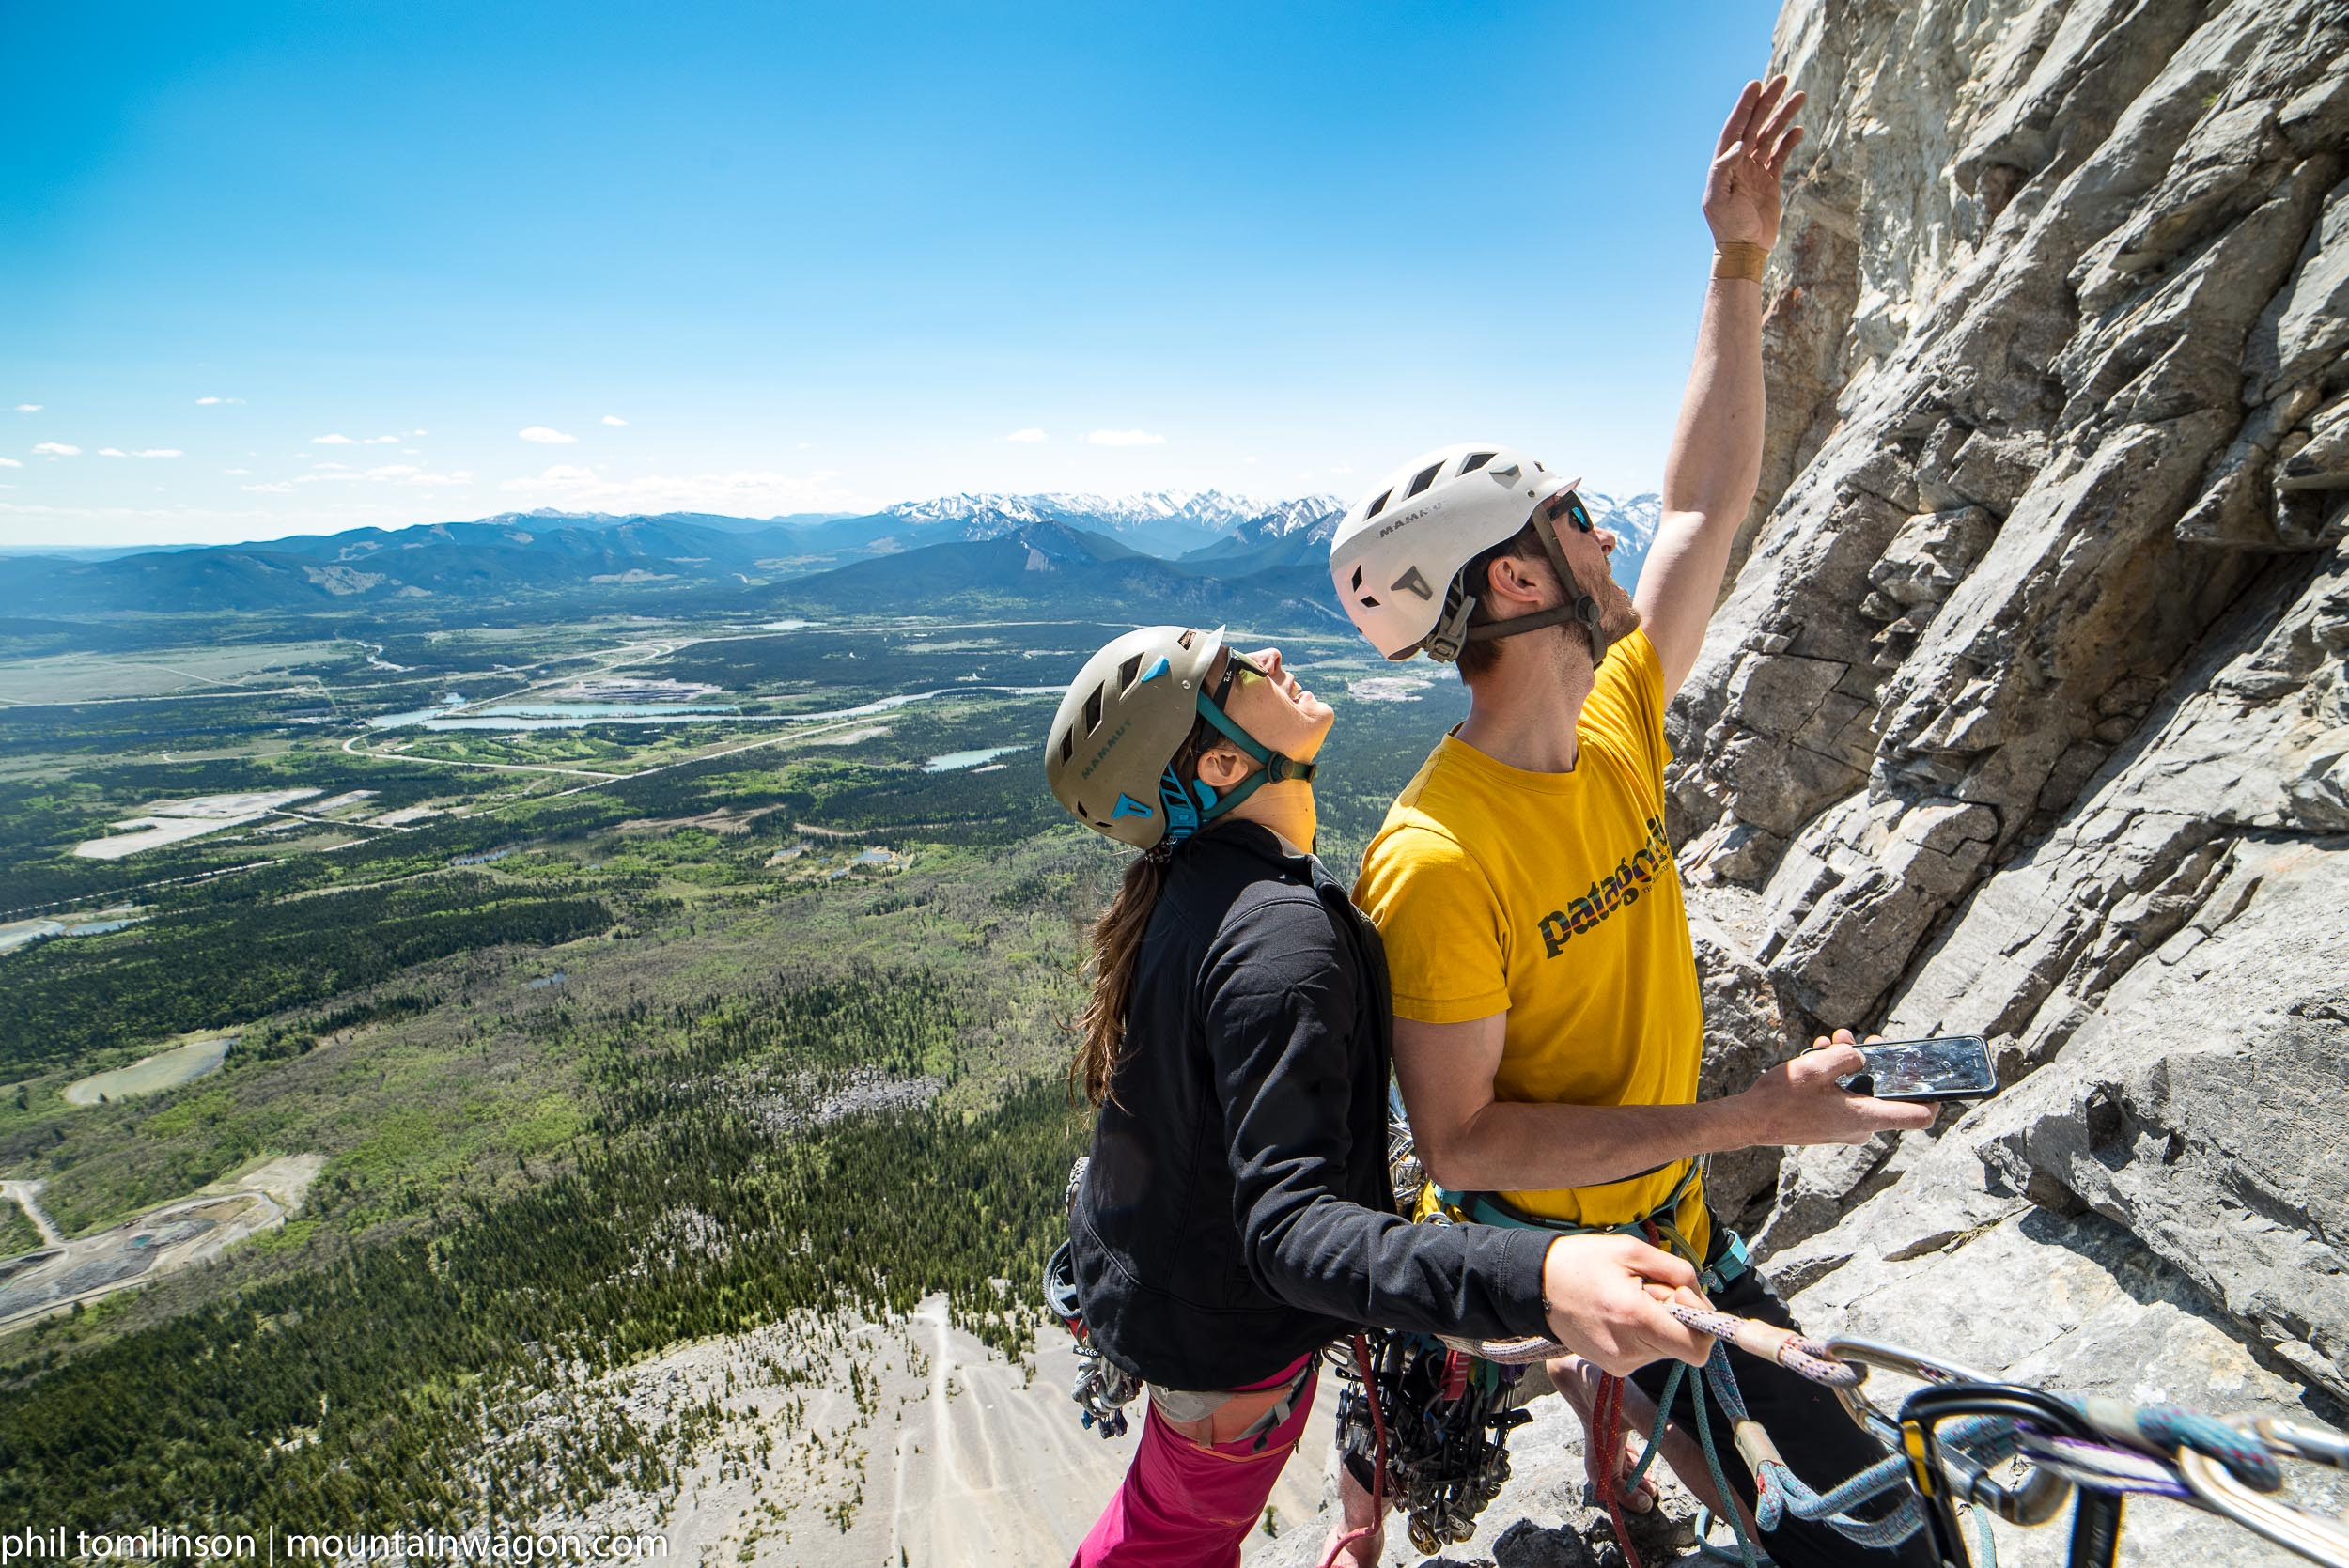 The only way this could have been a more classic Yamnuska photo is if they were using the guidebook instead of a cell phone to figure out where the hell the route went